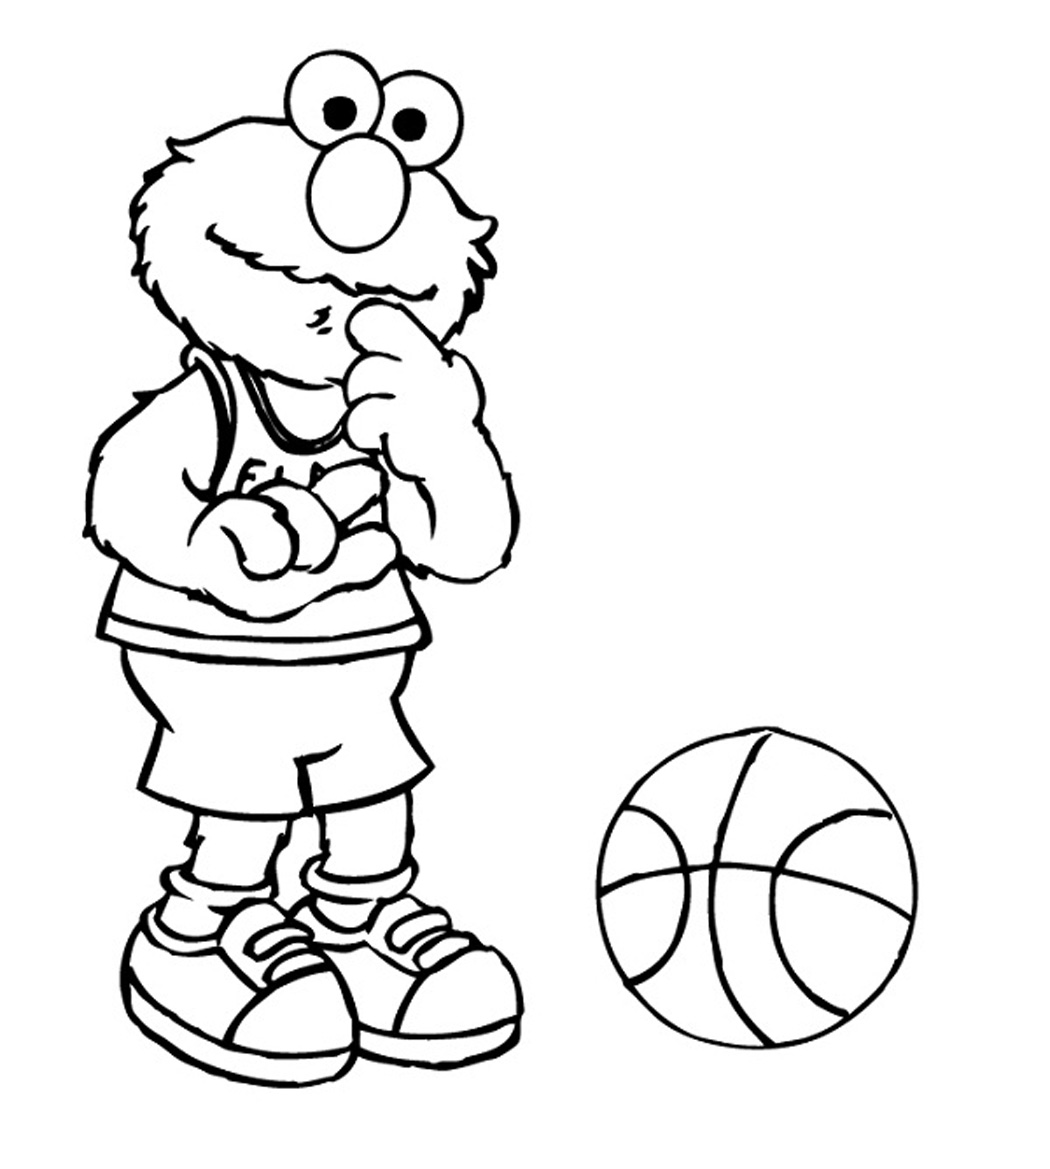 Free Printable Elmo Coloring Pages